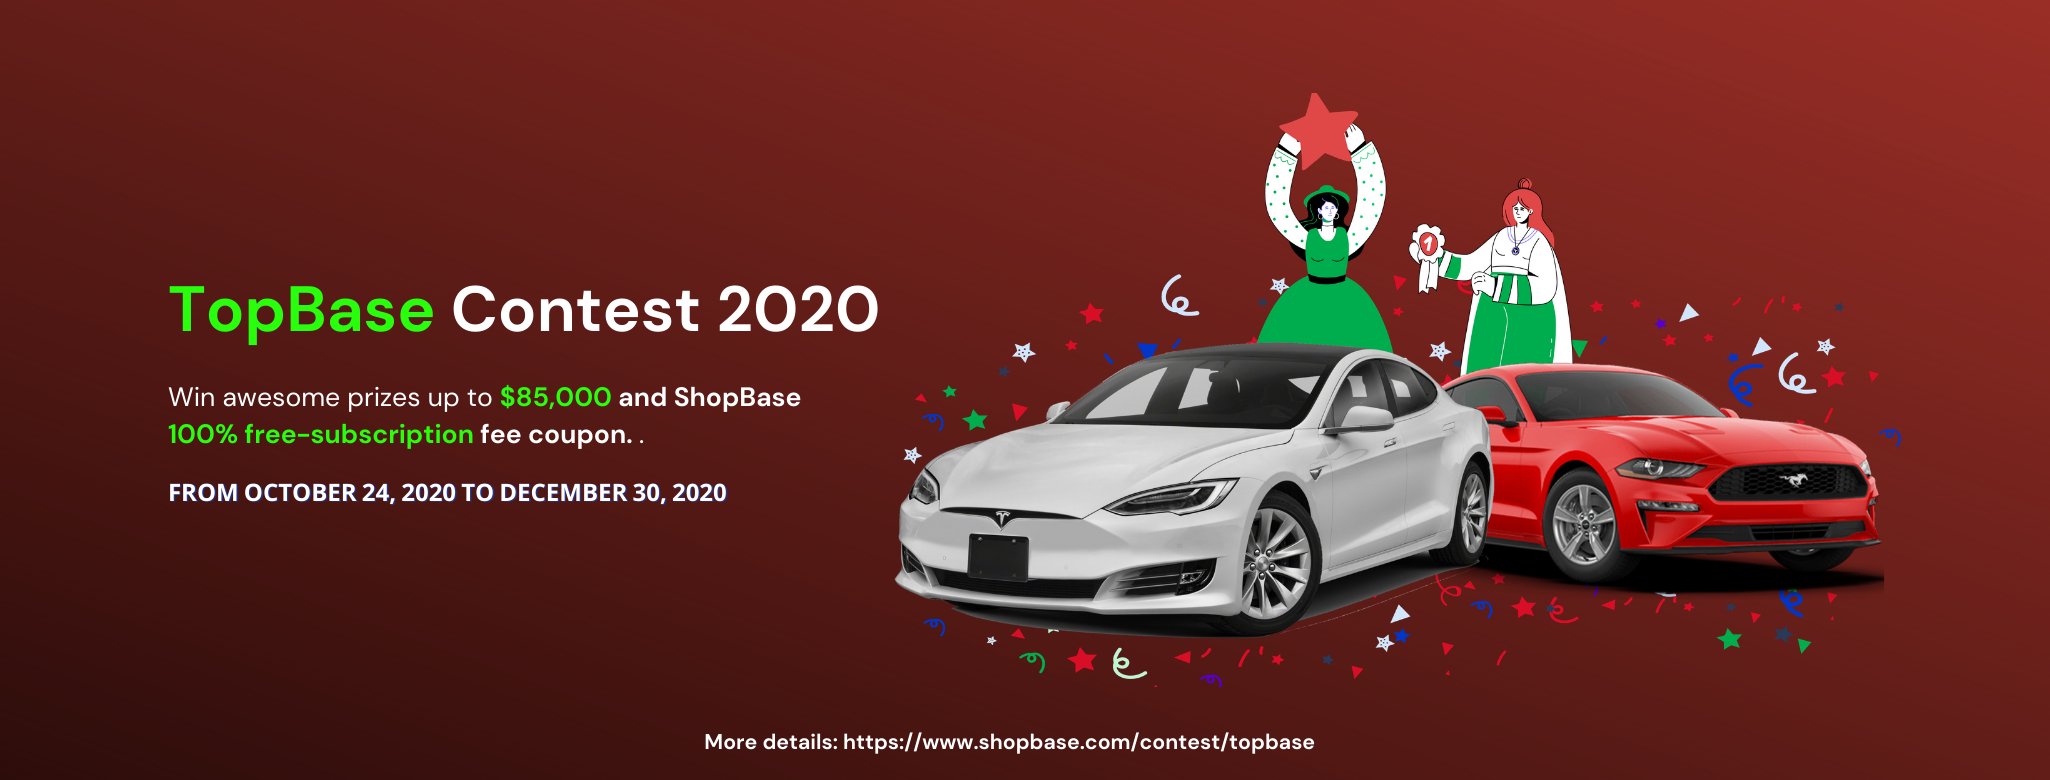 TopBase Contest 2020